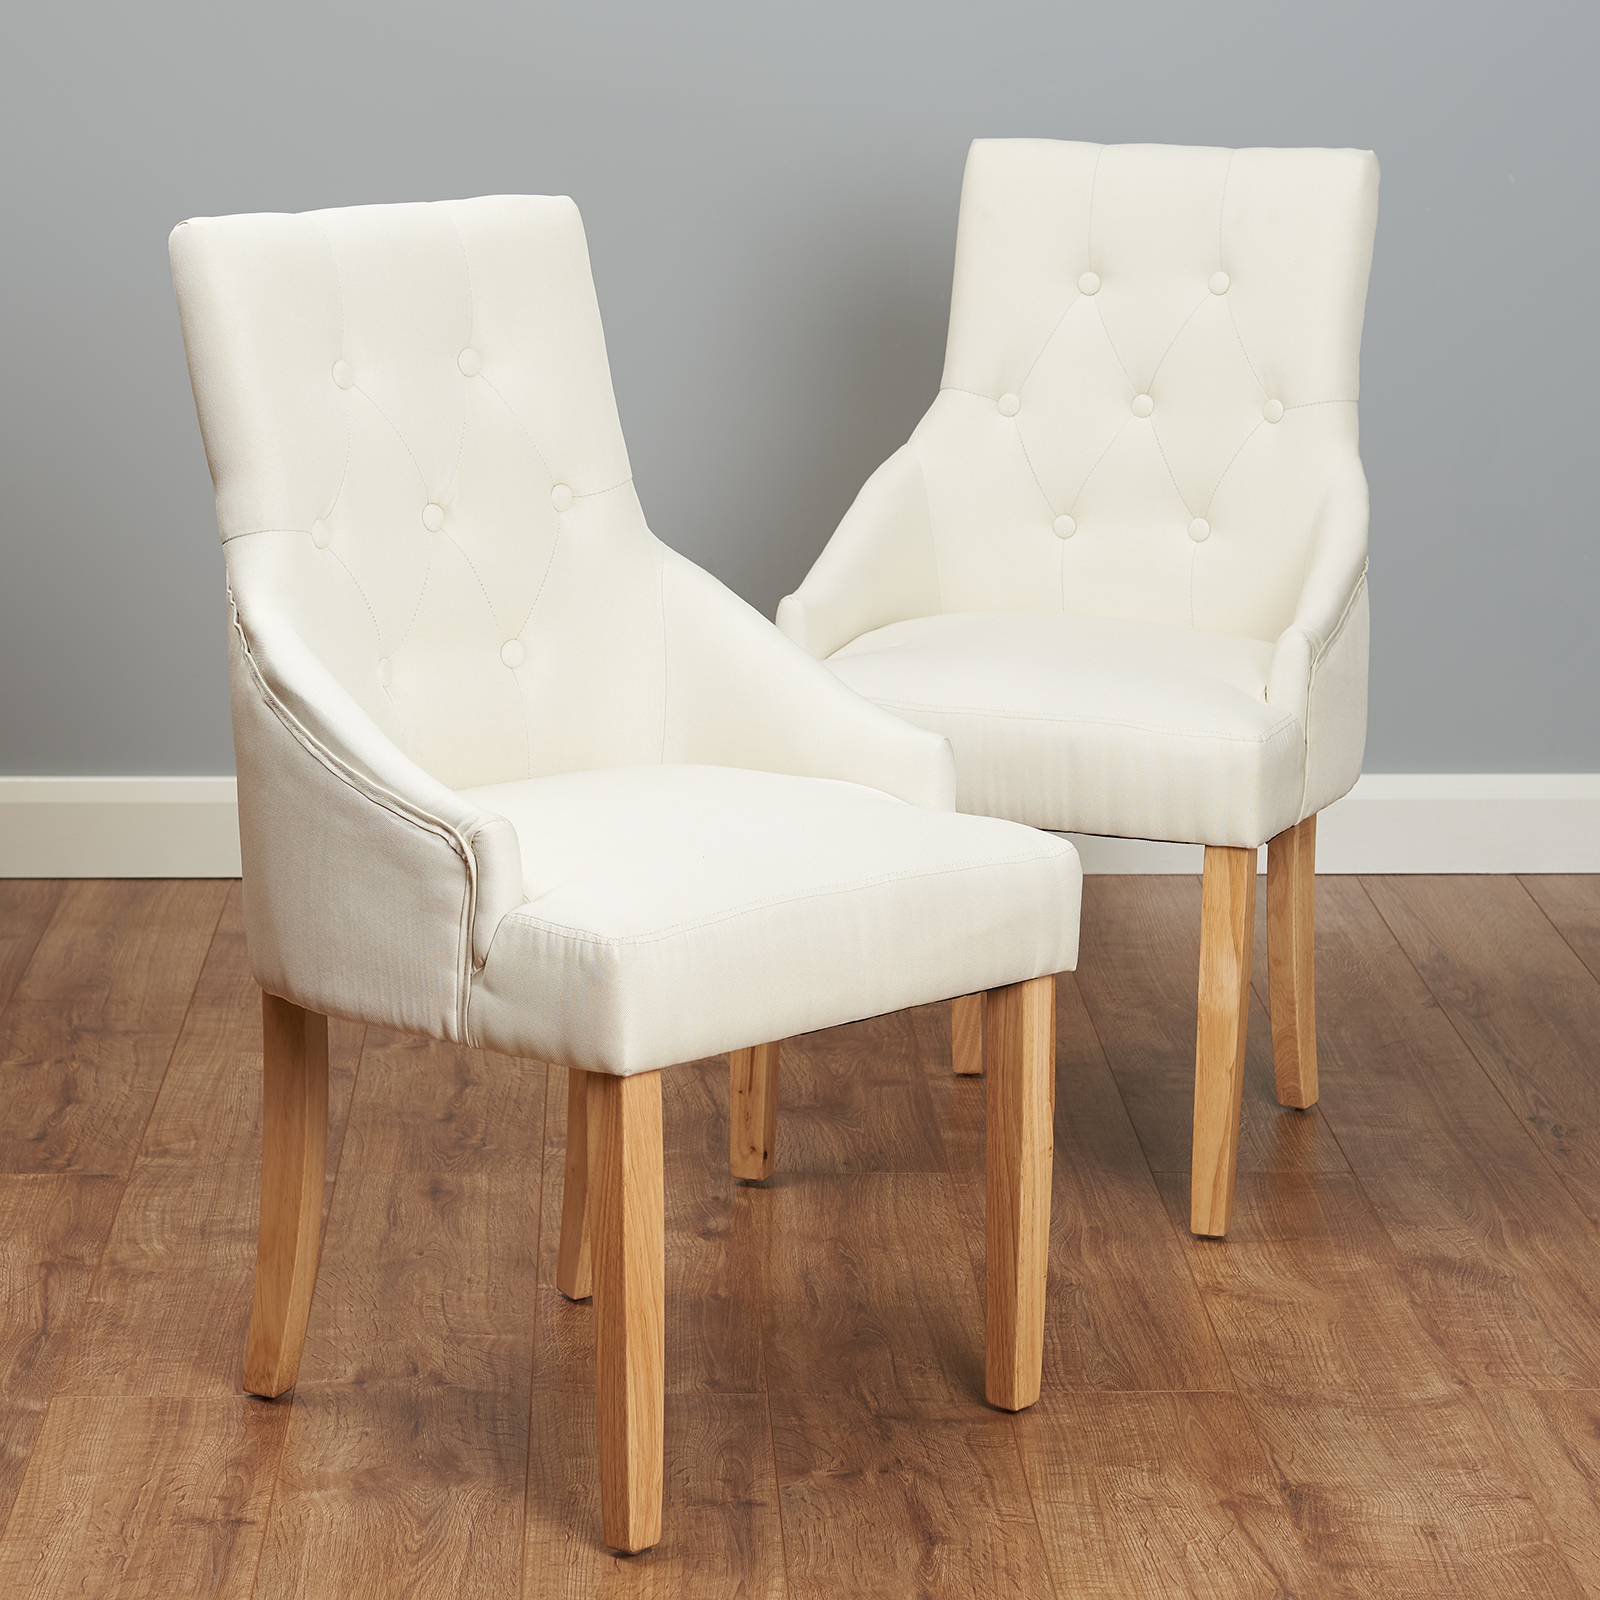 Pair Of Cream Upholstered Dining Chairs Scoop Button Back